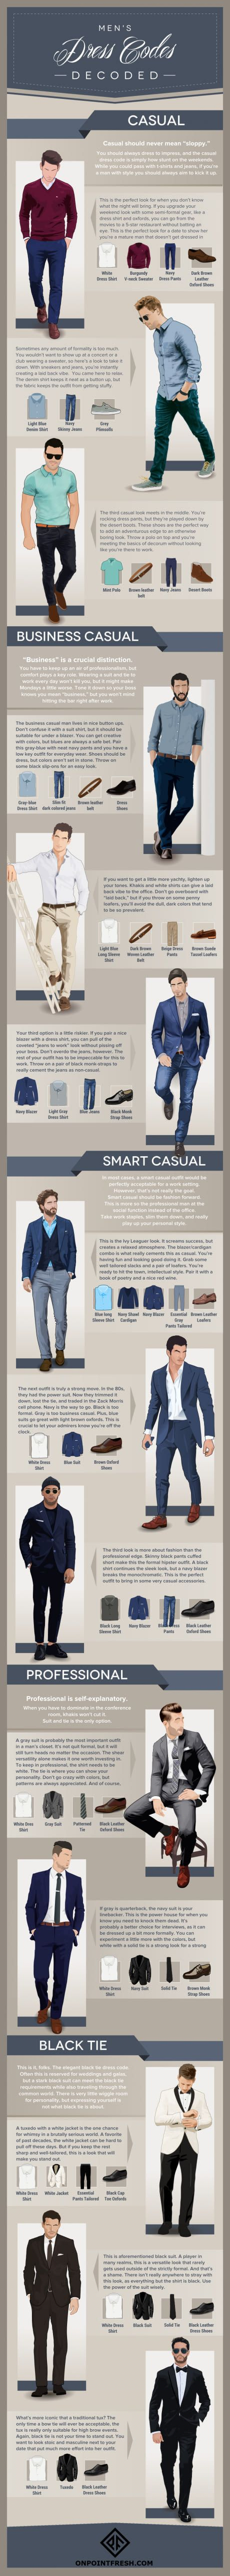 What does 'Casual' even mean? Men's Dress Codes, Decoded...check out http://openlove101.com/